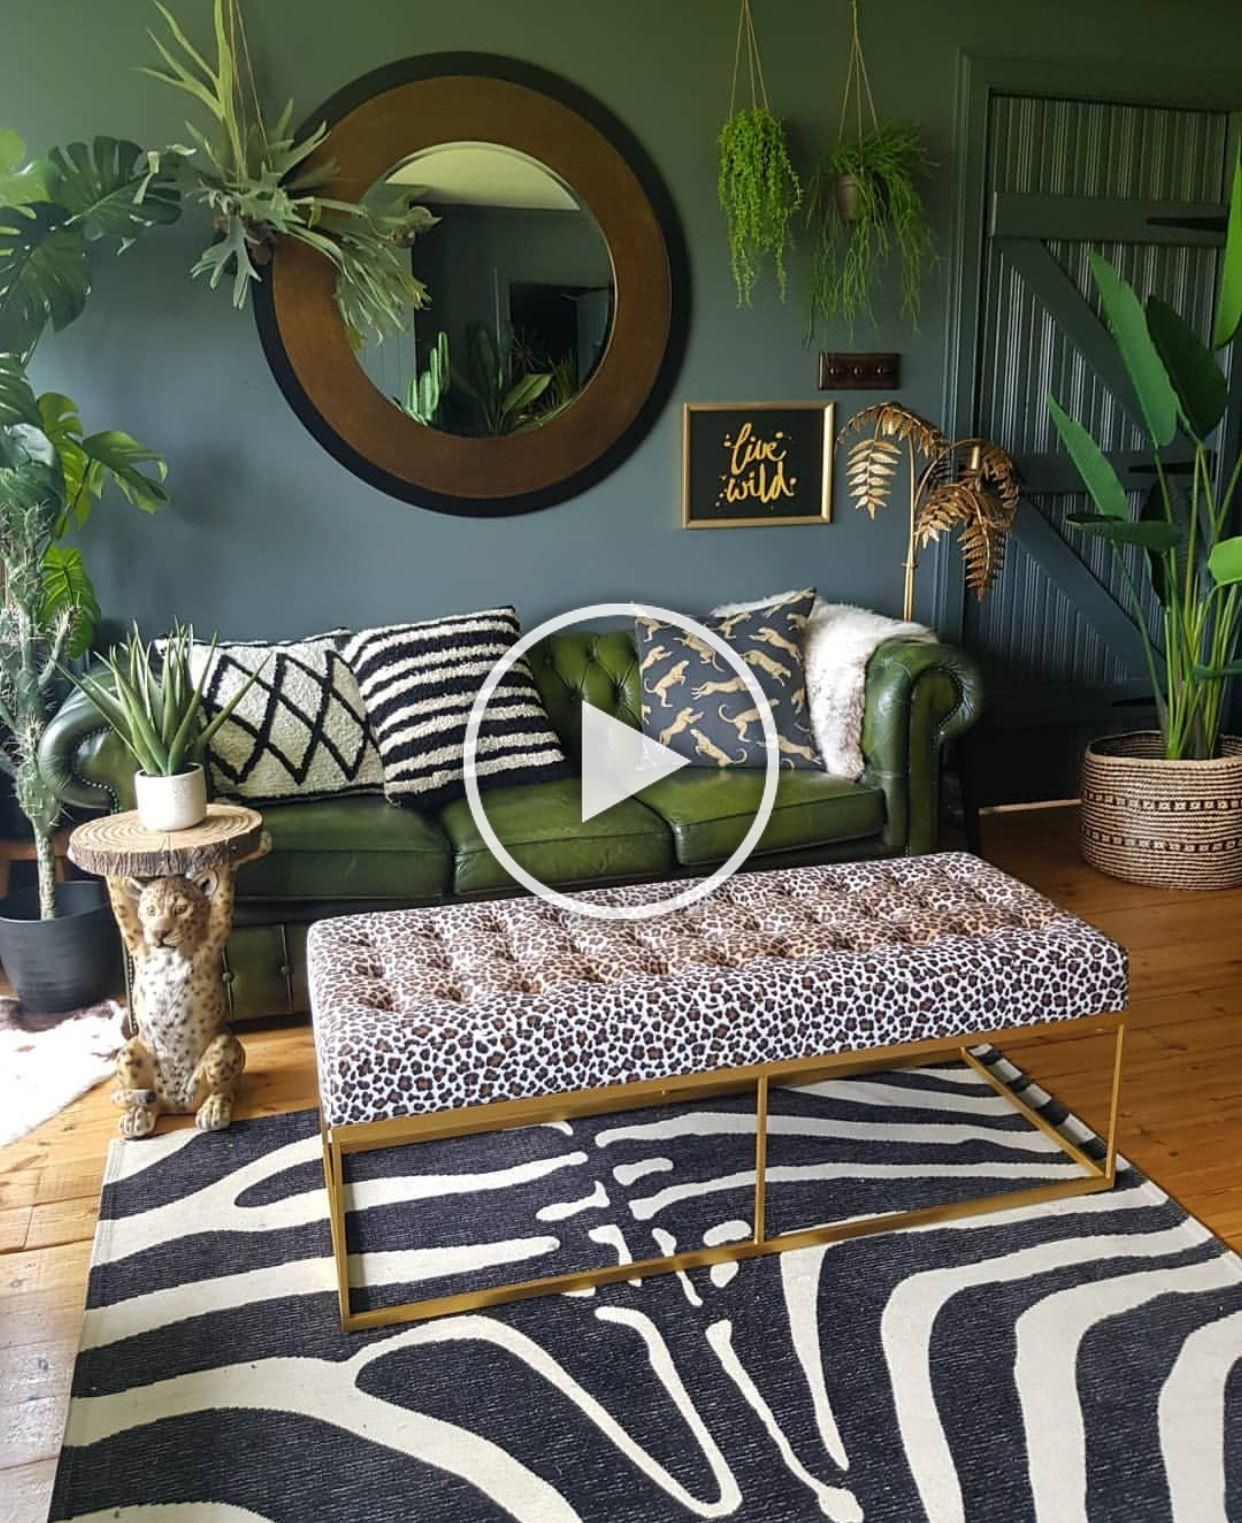 donwpipe walls green leather chesterfield sofa leopard